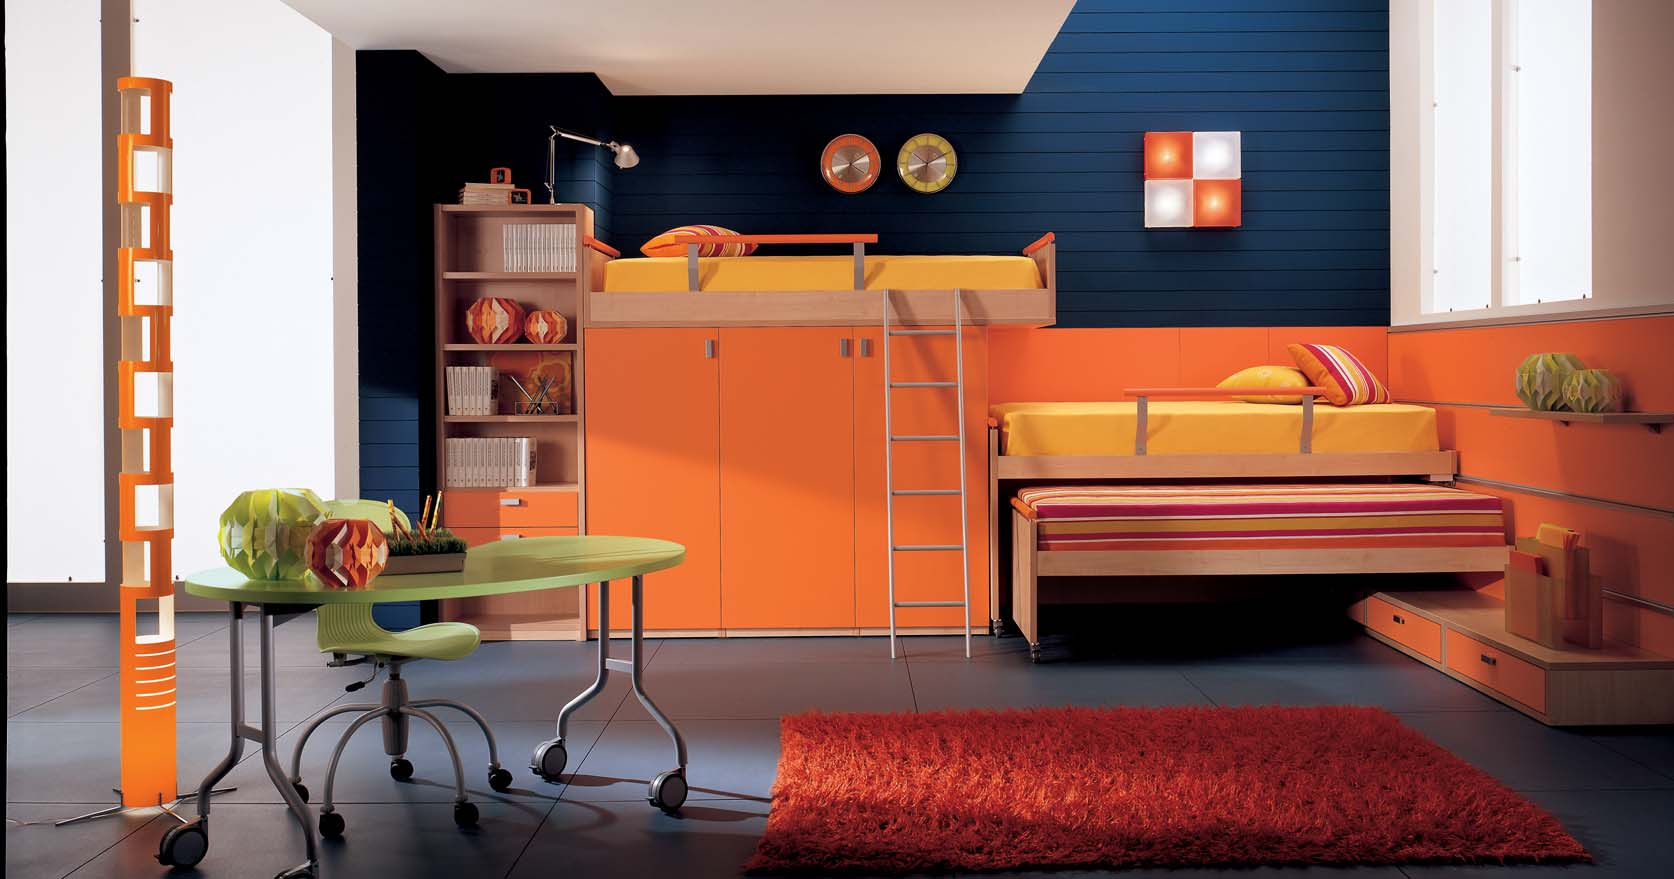 Kids Bedroom Interior Design kids bedroom interior design - stylehomes